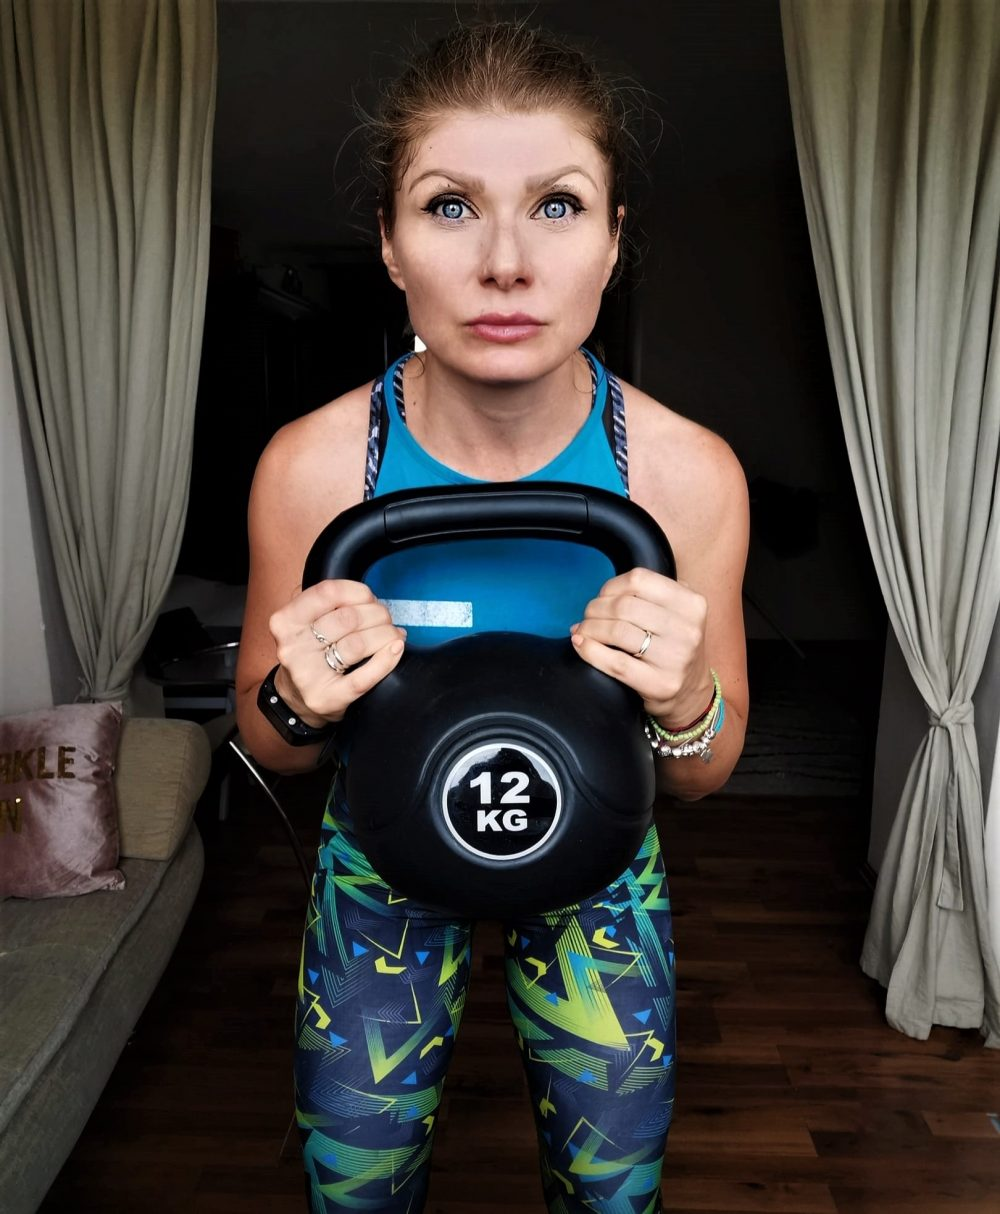 kettlebell training at home